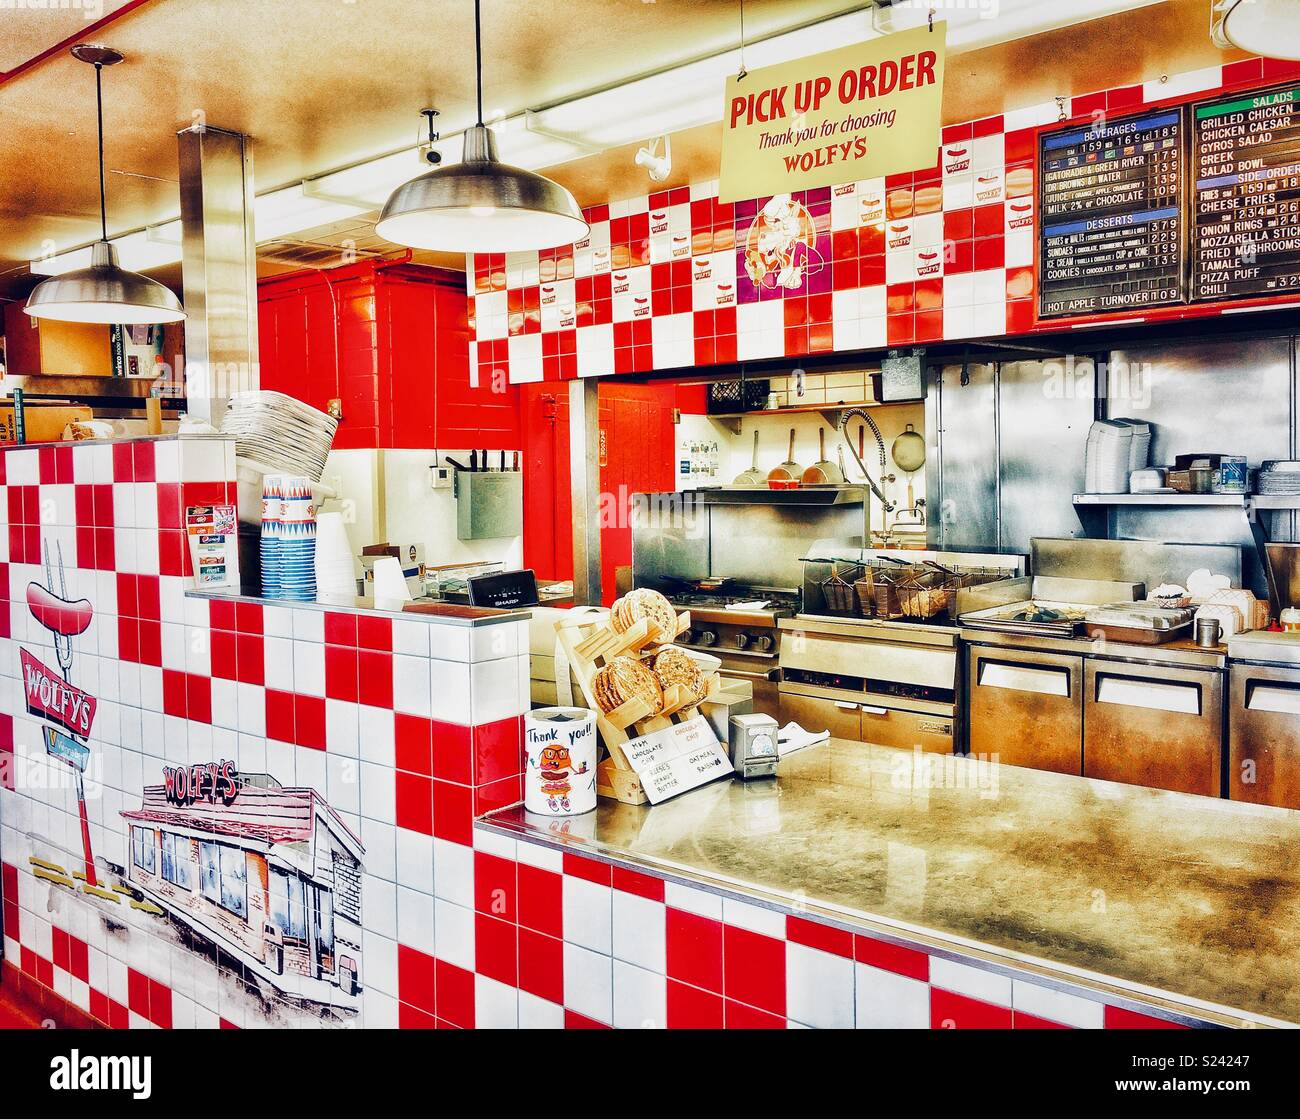 Inside of Wolfy's Hot dog joint in Chicago - Stock Image